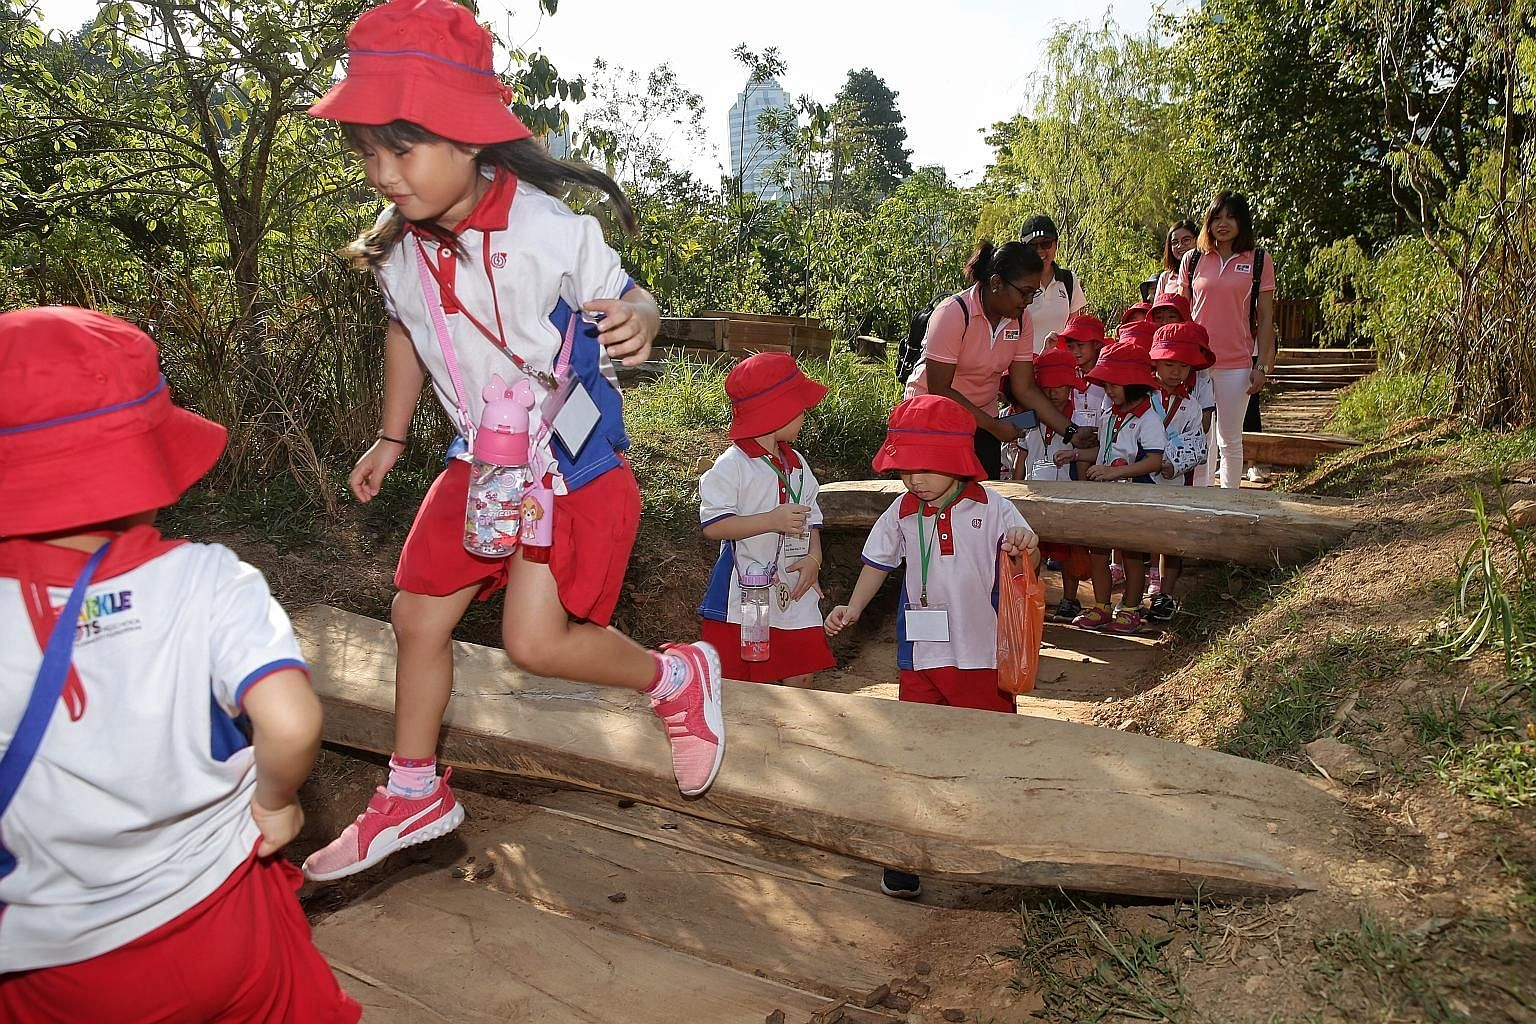 Prime Minister Lee Hsien Loong said the Government spends $1 billion a year on early childhood education and this will more than double over the next few years. In the future, 80 per cent of pre-school places will be government-supported, up from jus